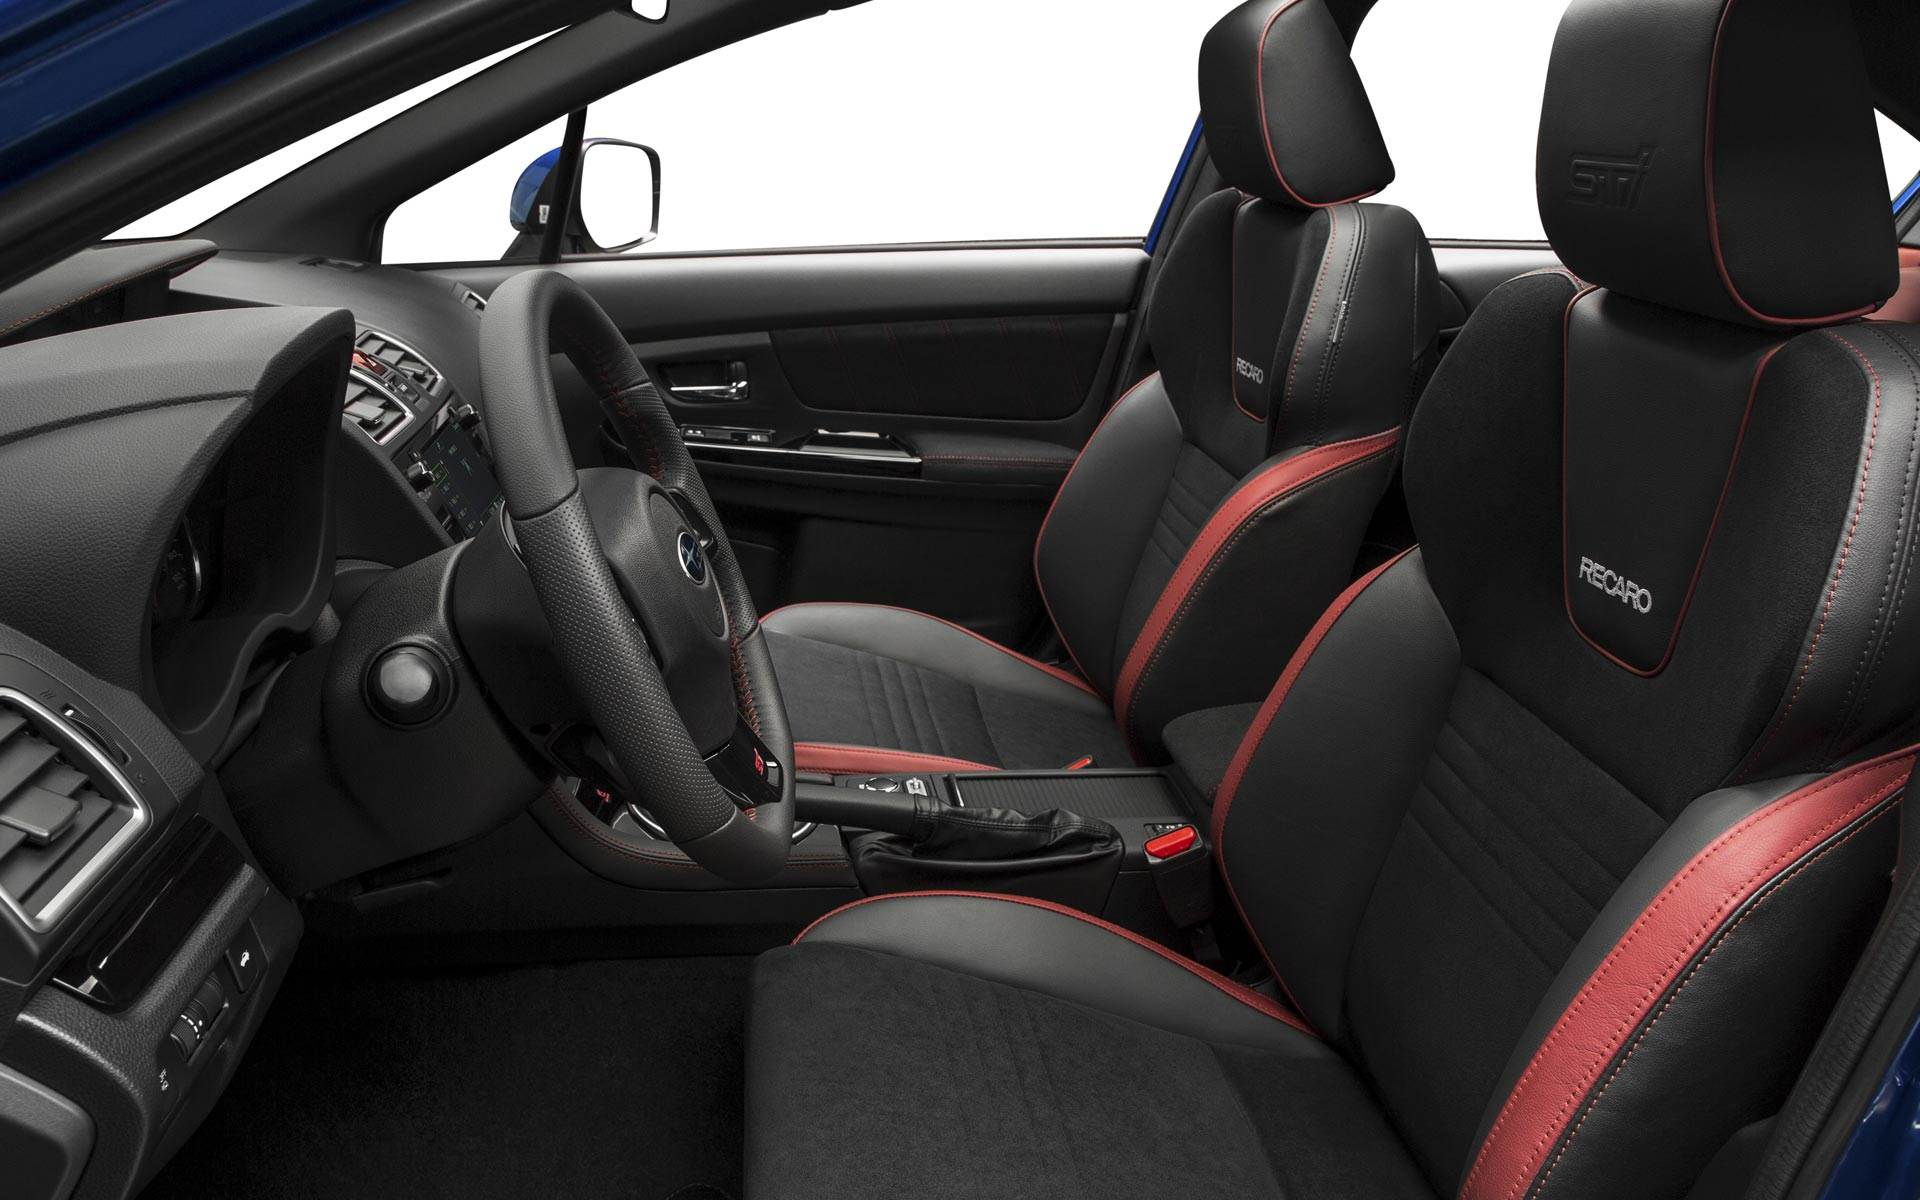 Available Sport Seats for the WRX